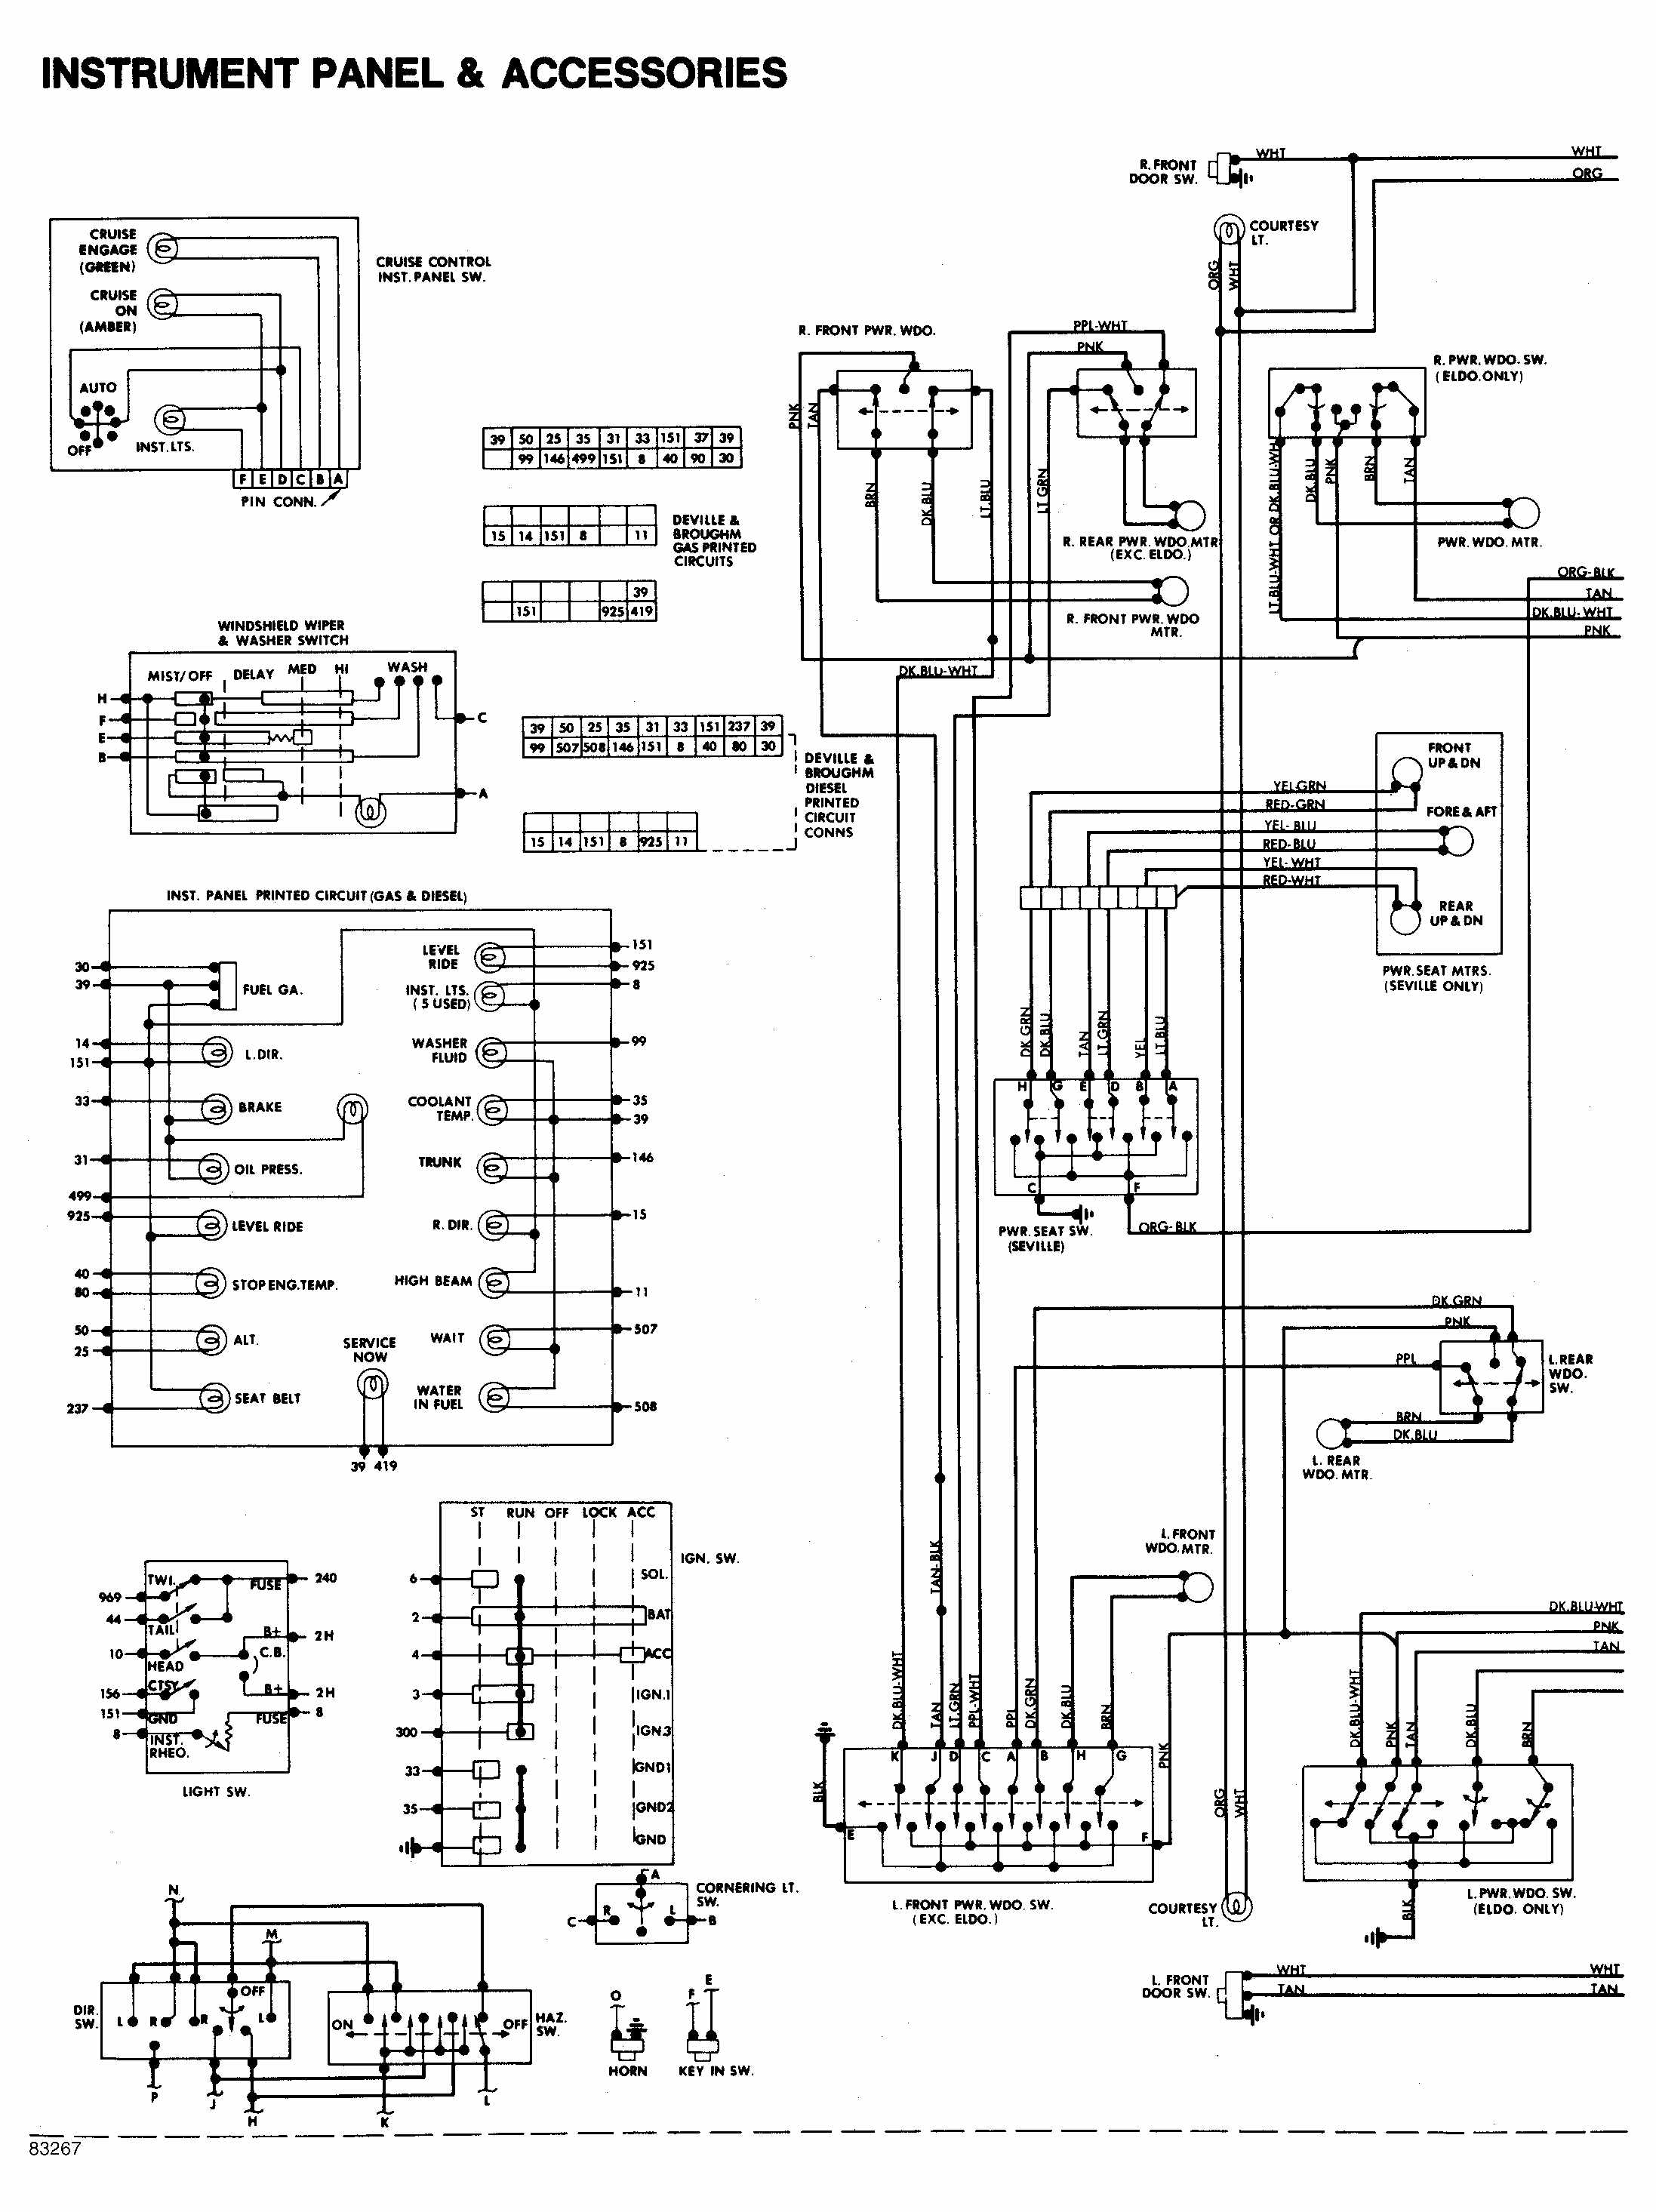 2000 cadillac deville radio wiring diagram Collection-2001 cadillac deville alarm wiring diagram wire center u2022 rh inkshirts co Wiring Schematics for a 2000 Cadillac Escalade Wiring Harness 2003 Cadillac CTS 16-n